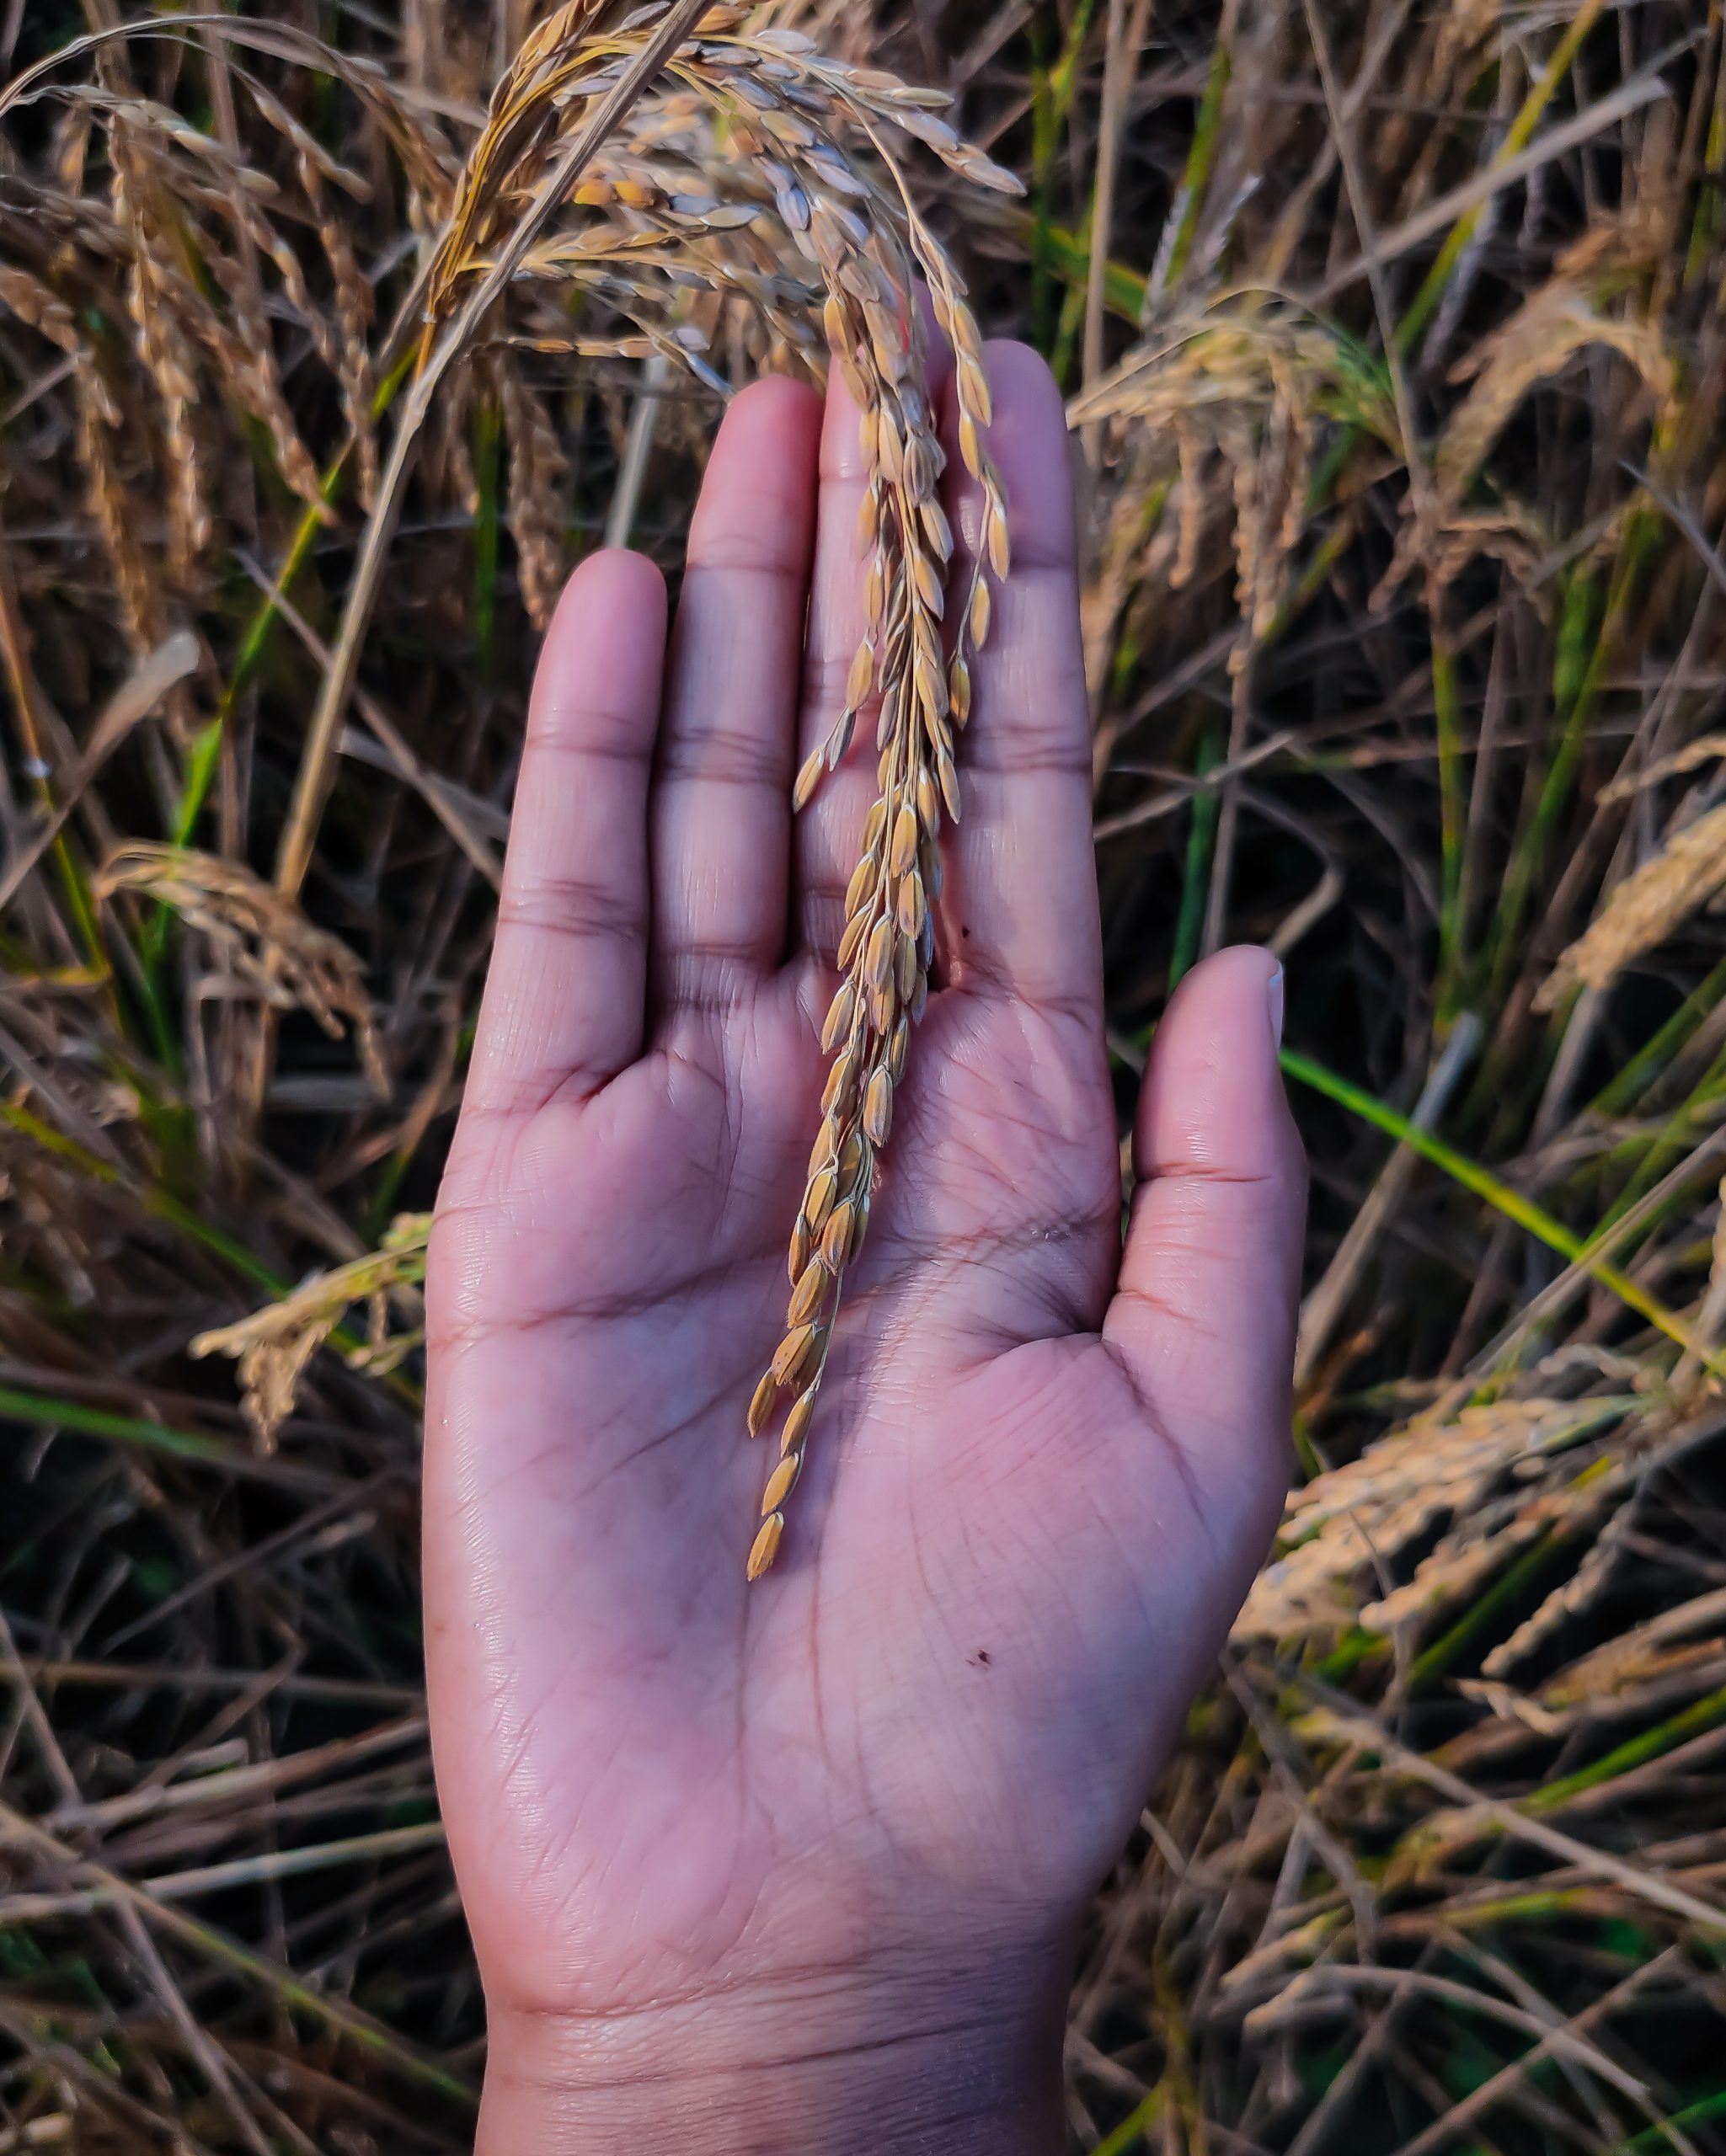 Rice plant seeds in hand